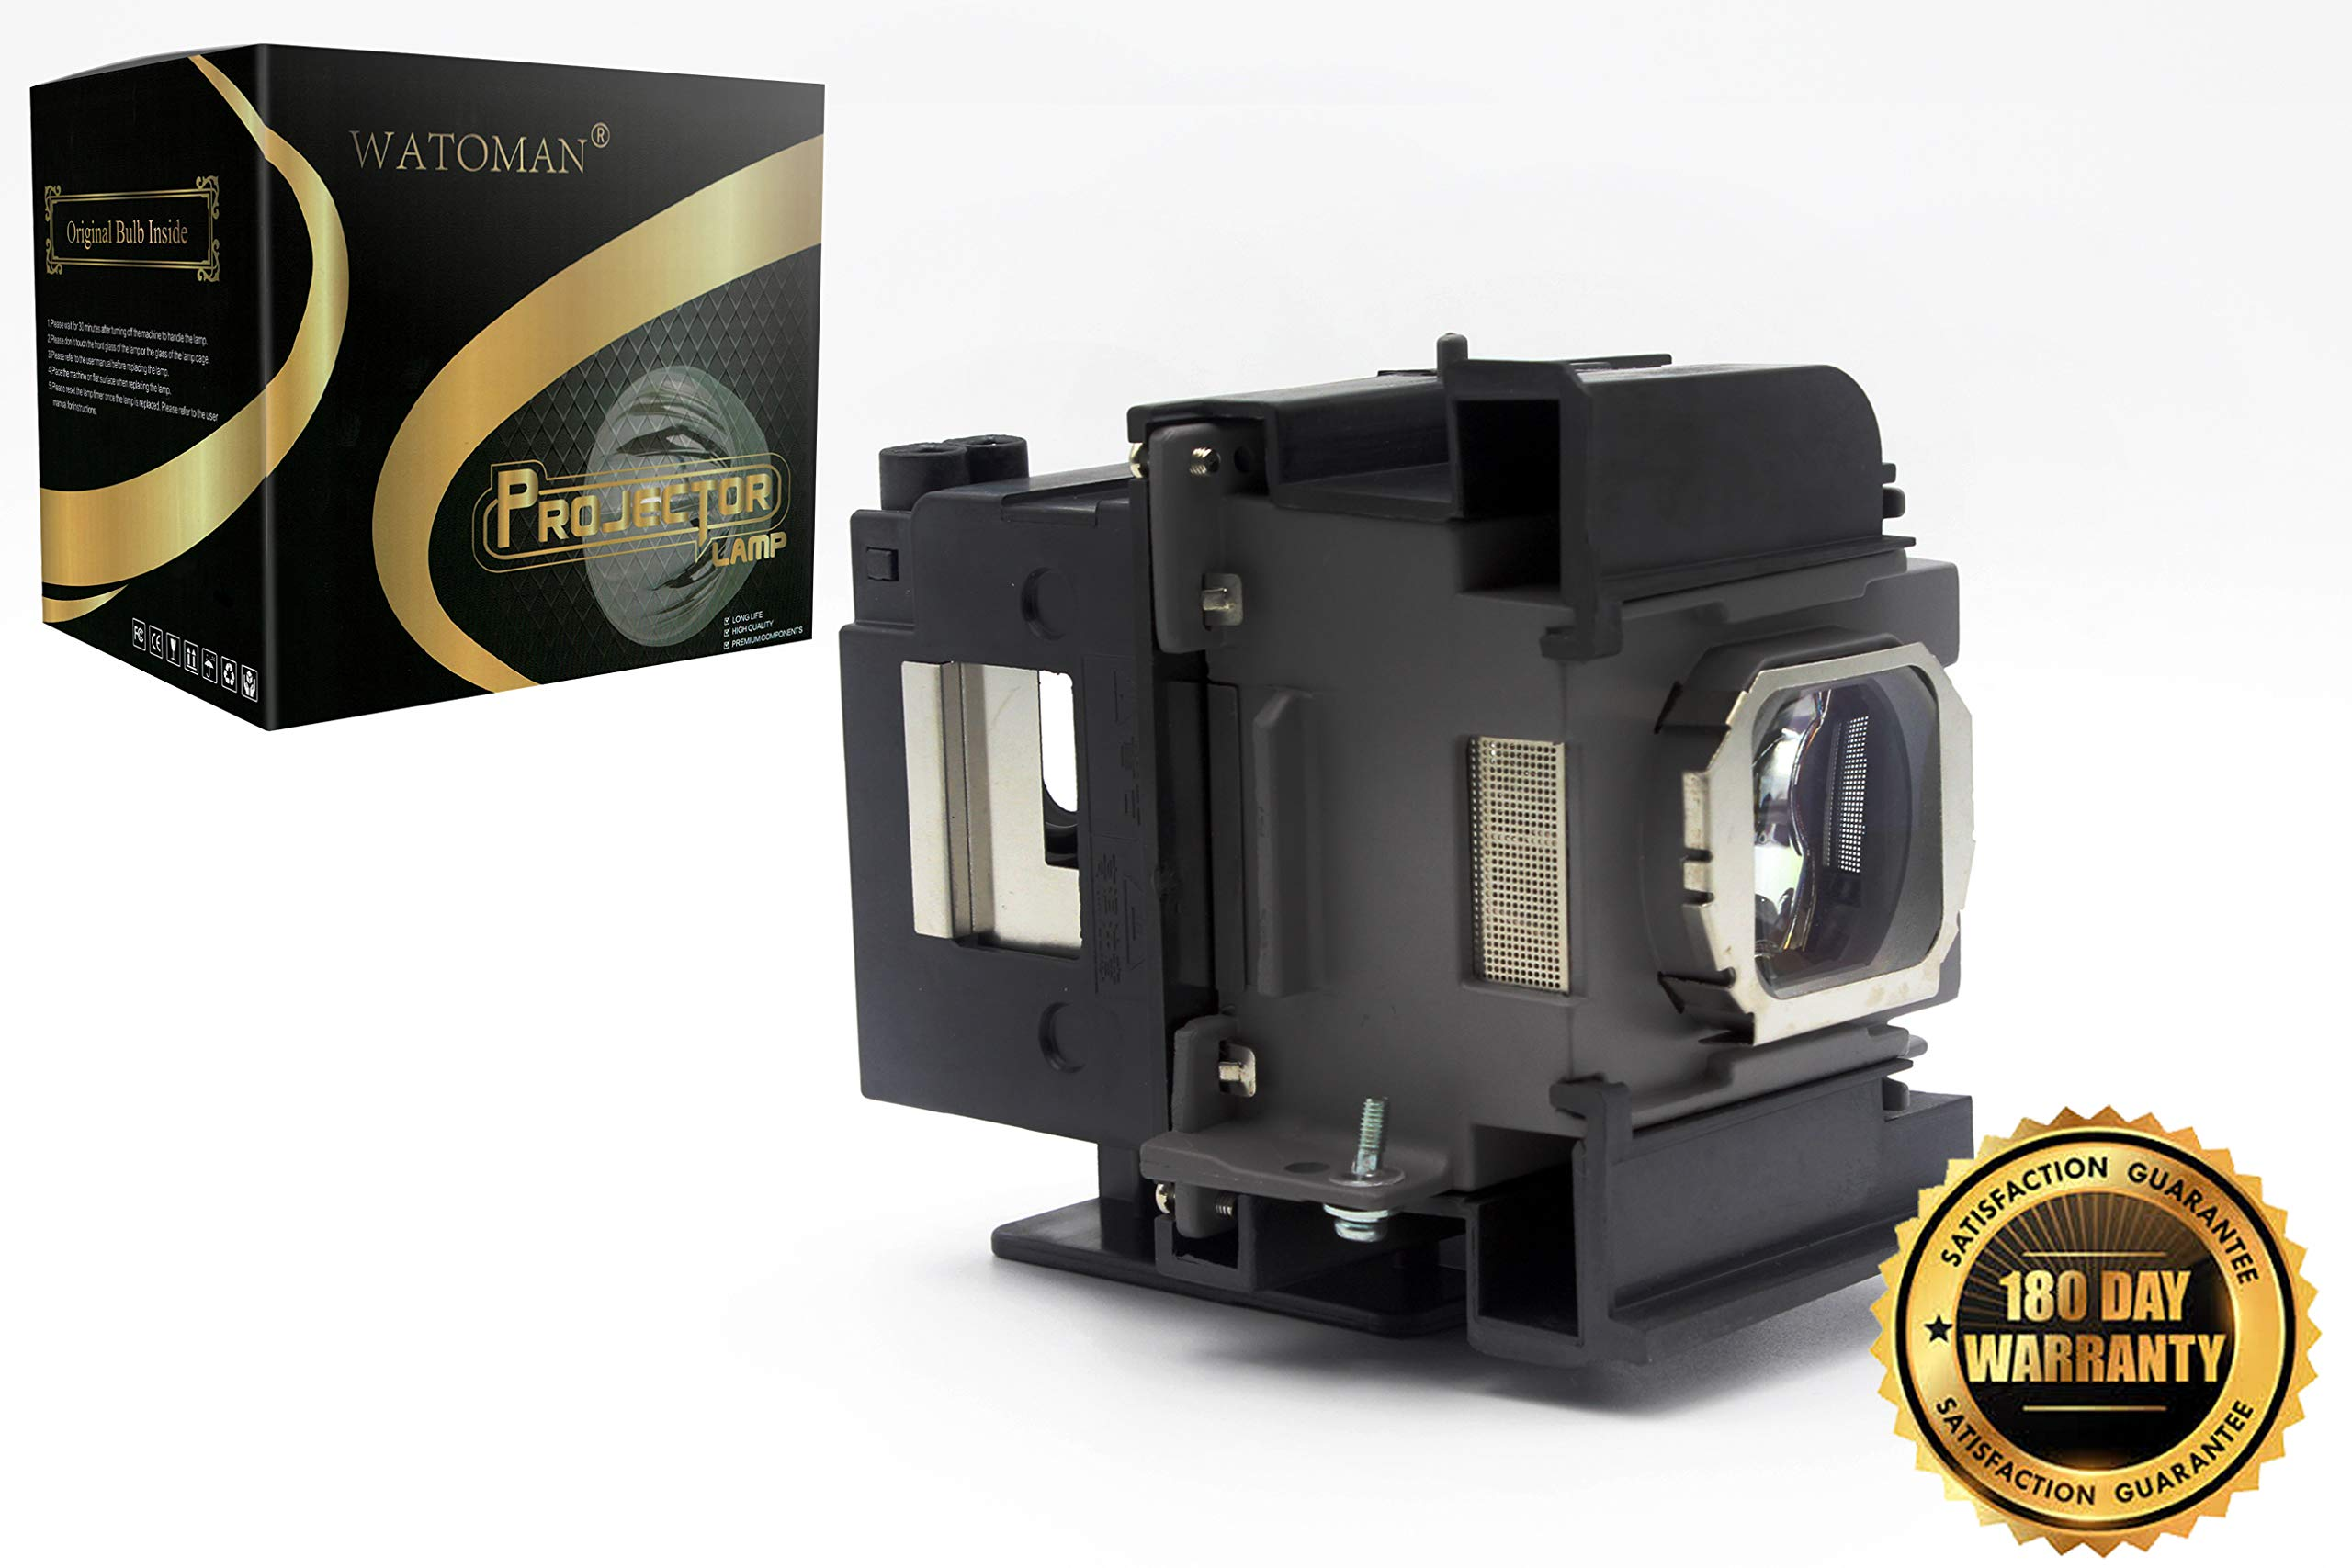 ET-LAA110 Assembly Original Replacement Projector Lamp with Housing for Panasonic PT-AH100 PT-AH100U PT-AH1000E PT-AR100 PT-AR100U PT-LZ370E Projectors by Watoman by WATOMAN